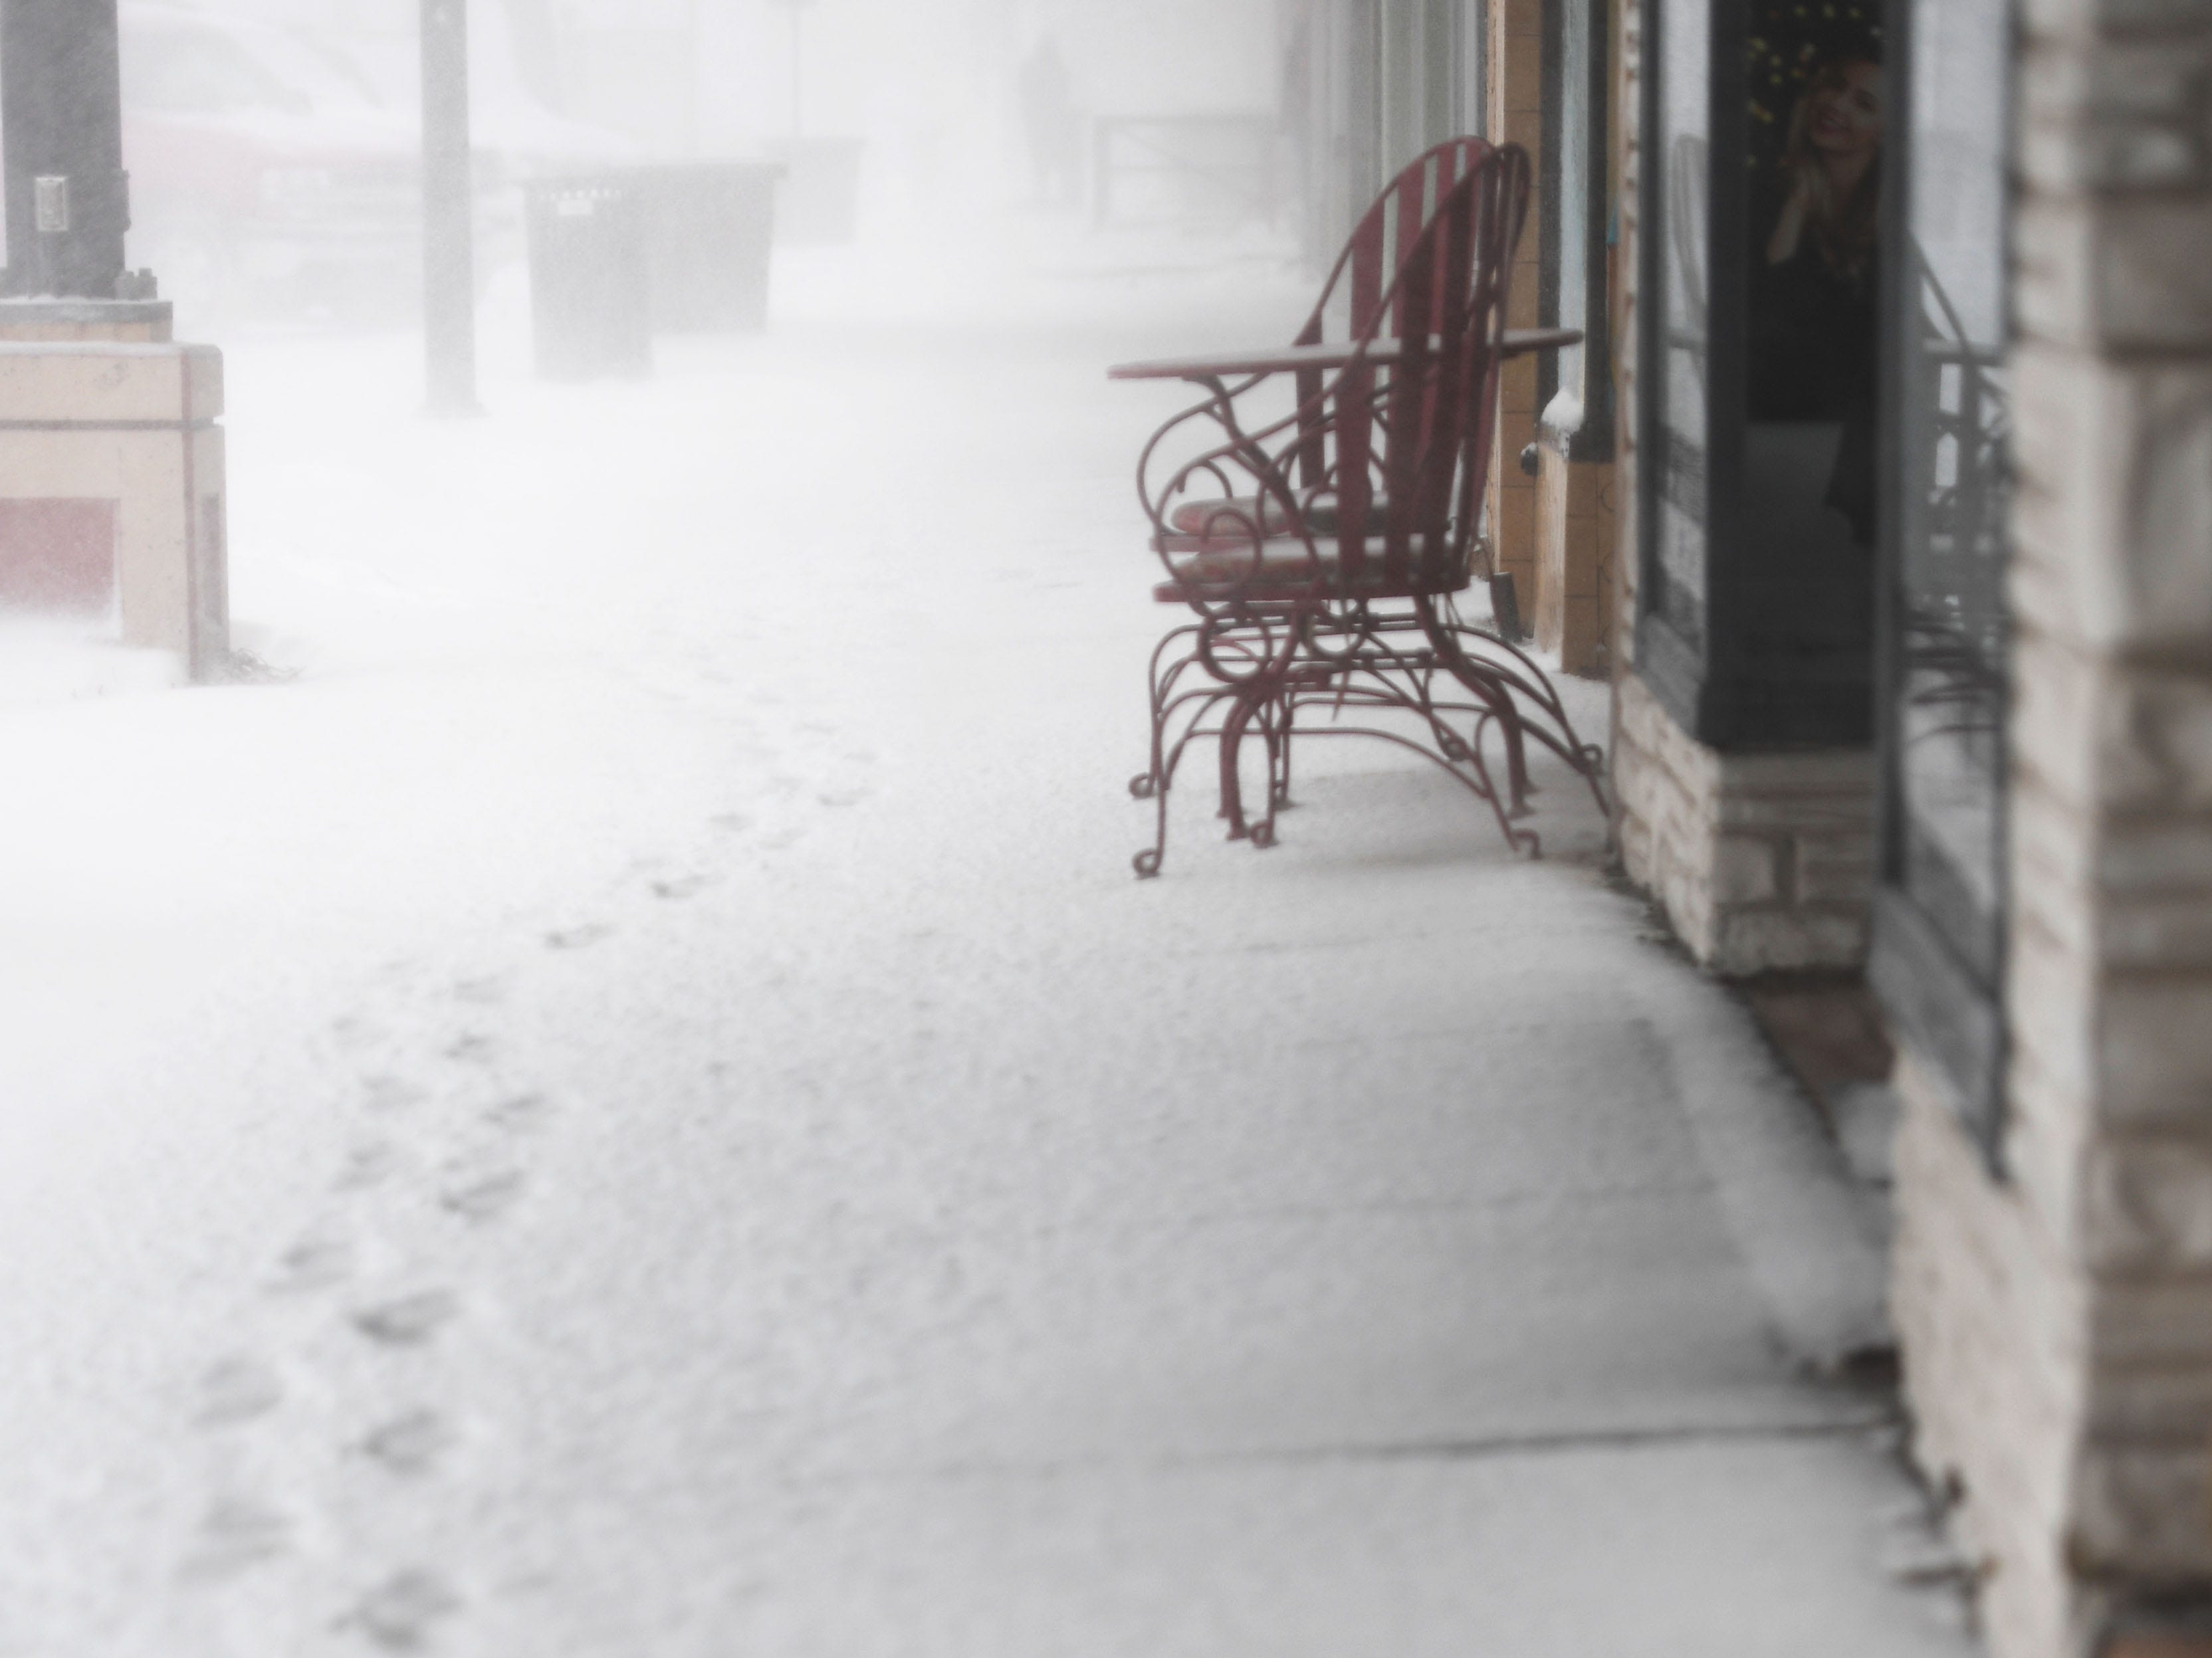 Foot prints in the snow during a blizzard in Rapid City Wednesday, March 13, in Rapid City, S.D.